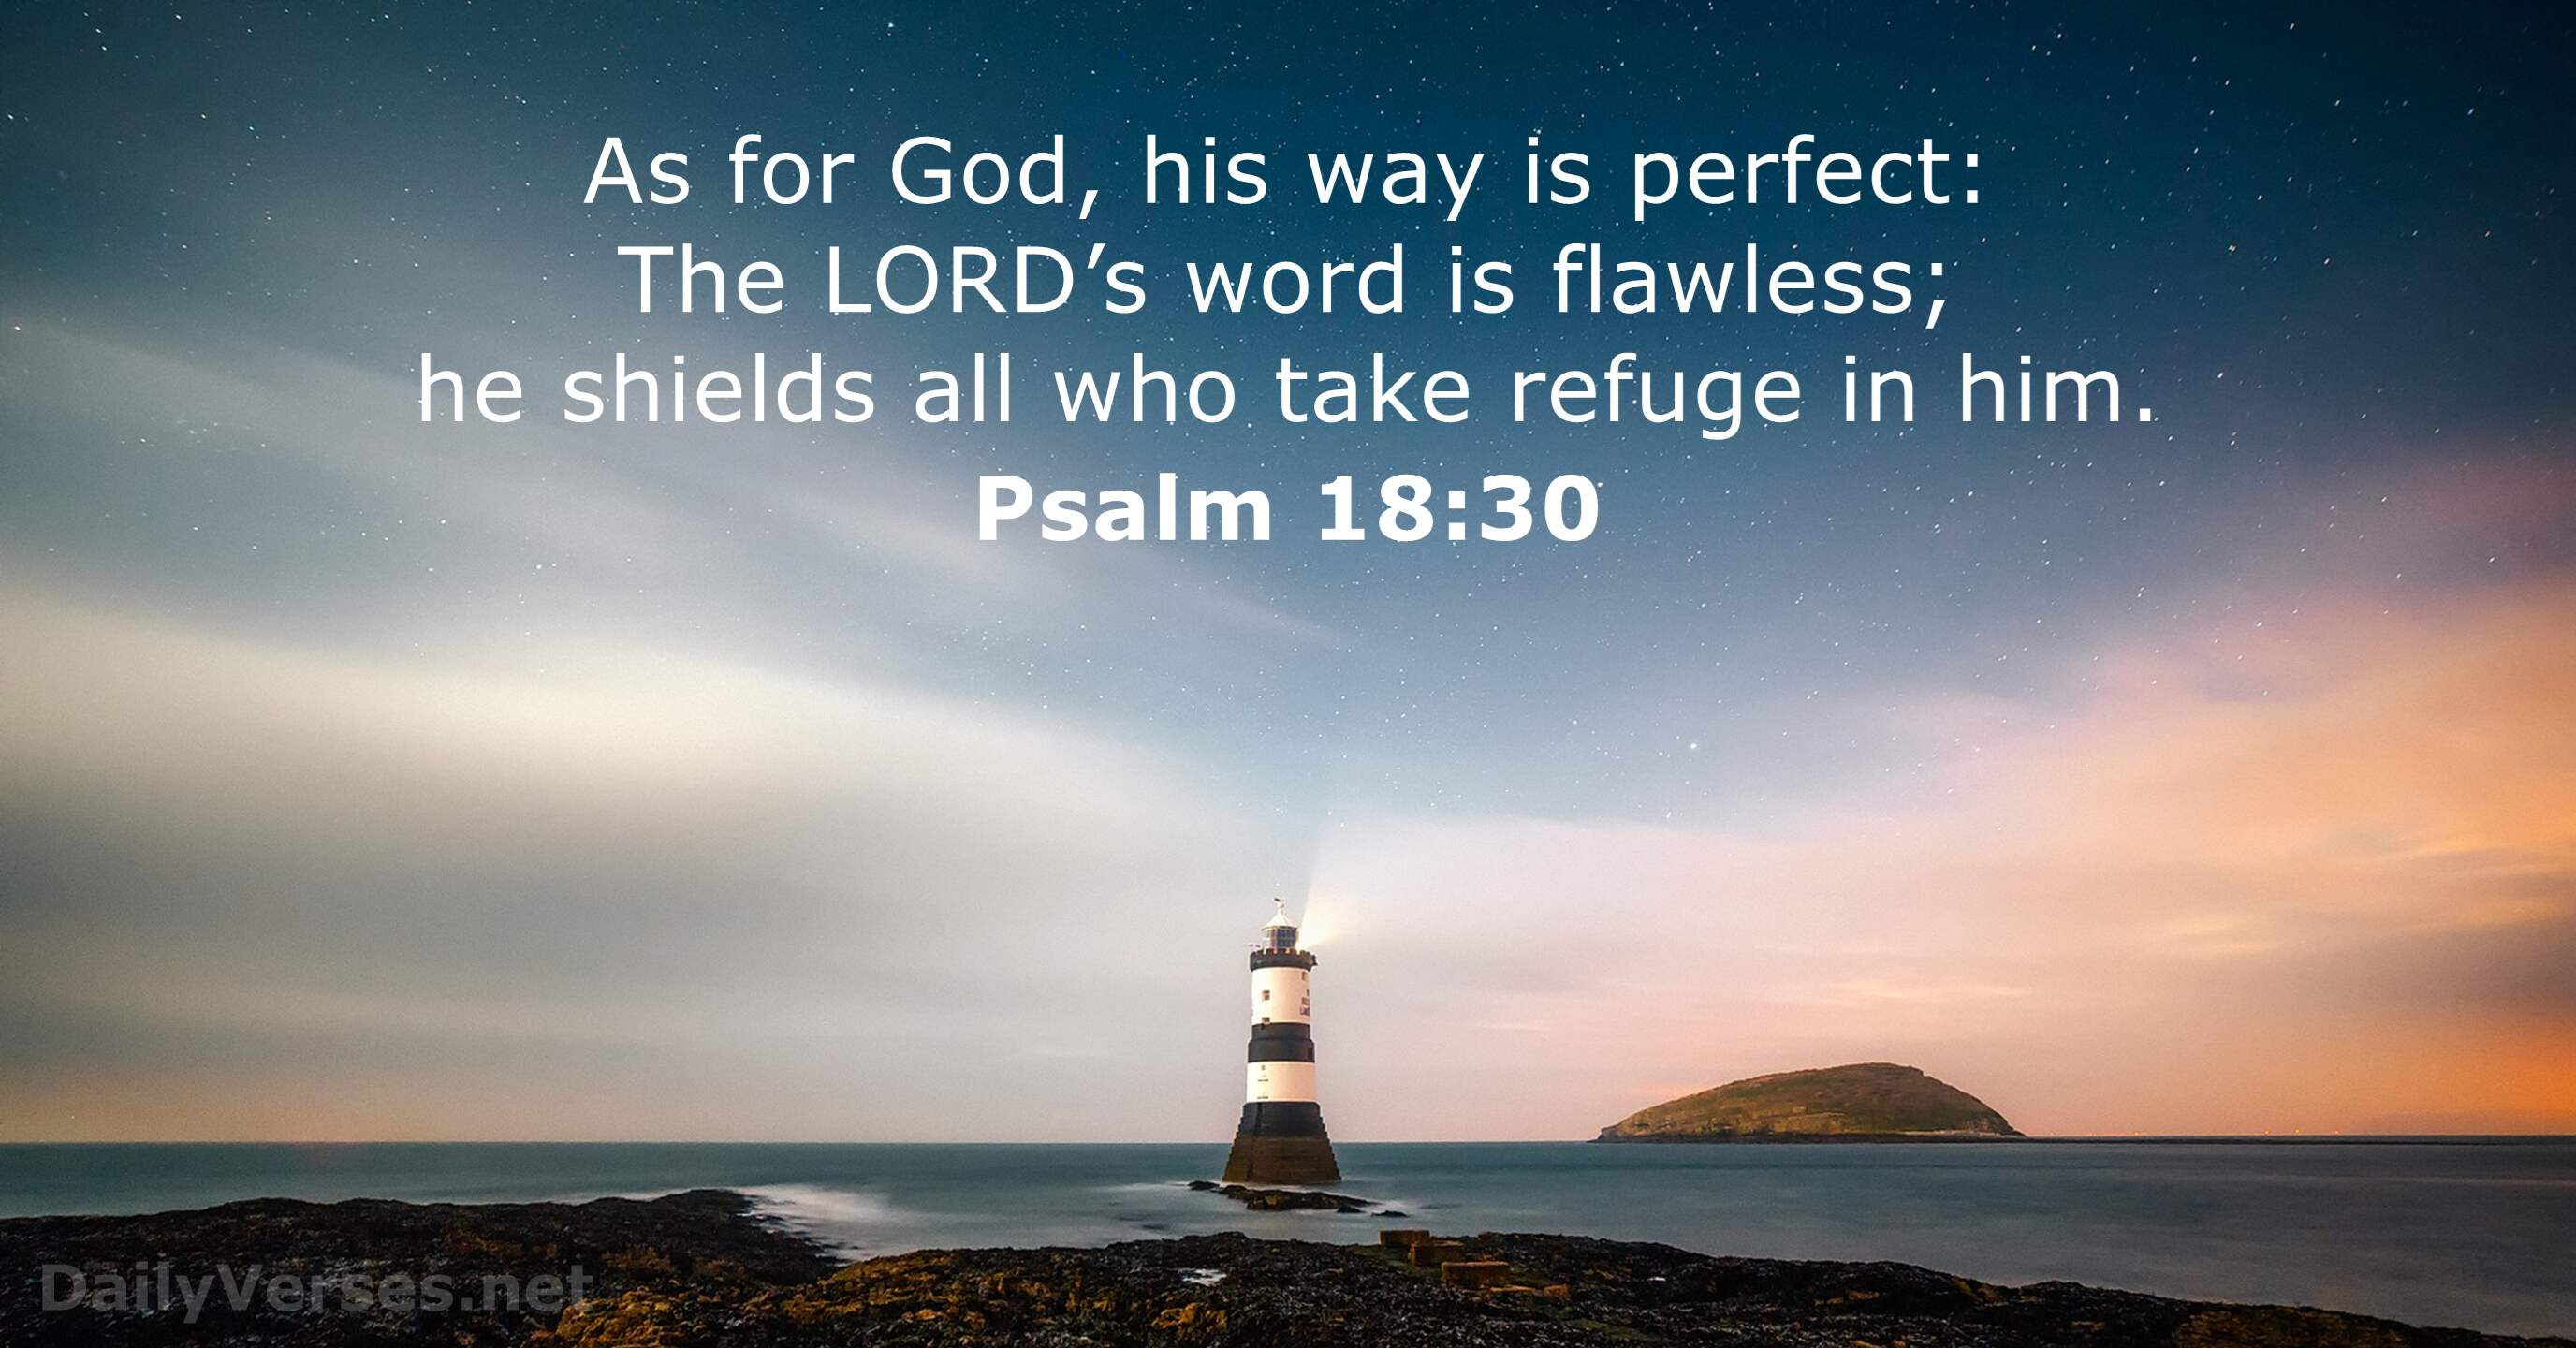 September 8, 2019 - Bible verse of the day - Psalm 18:30 ...